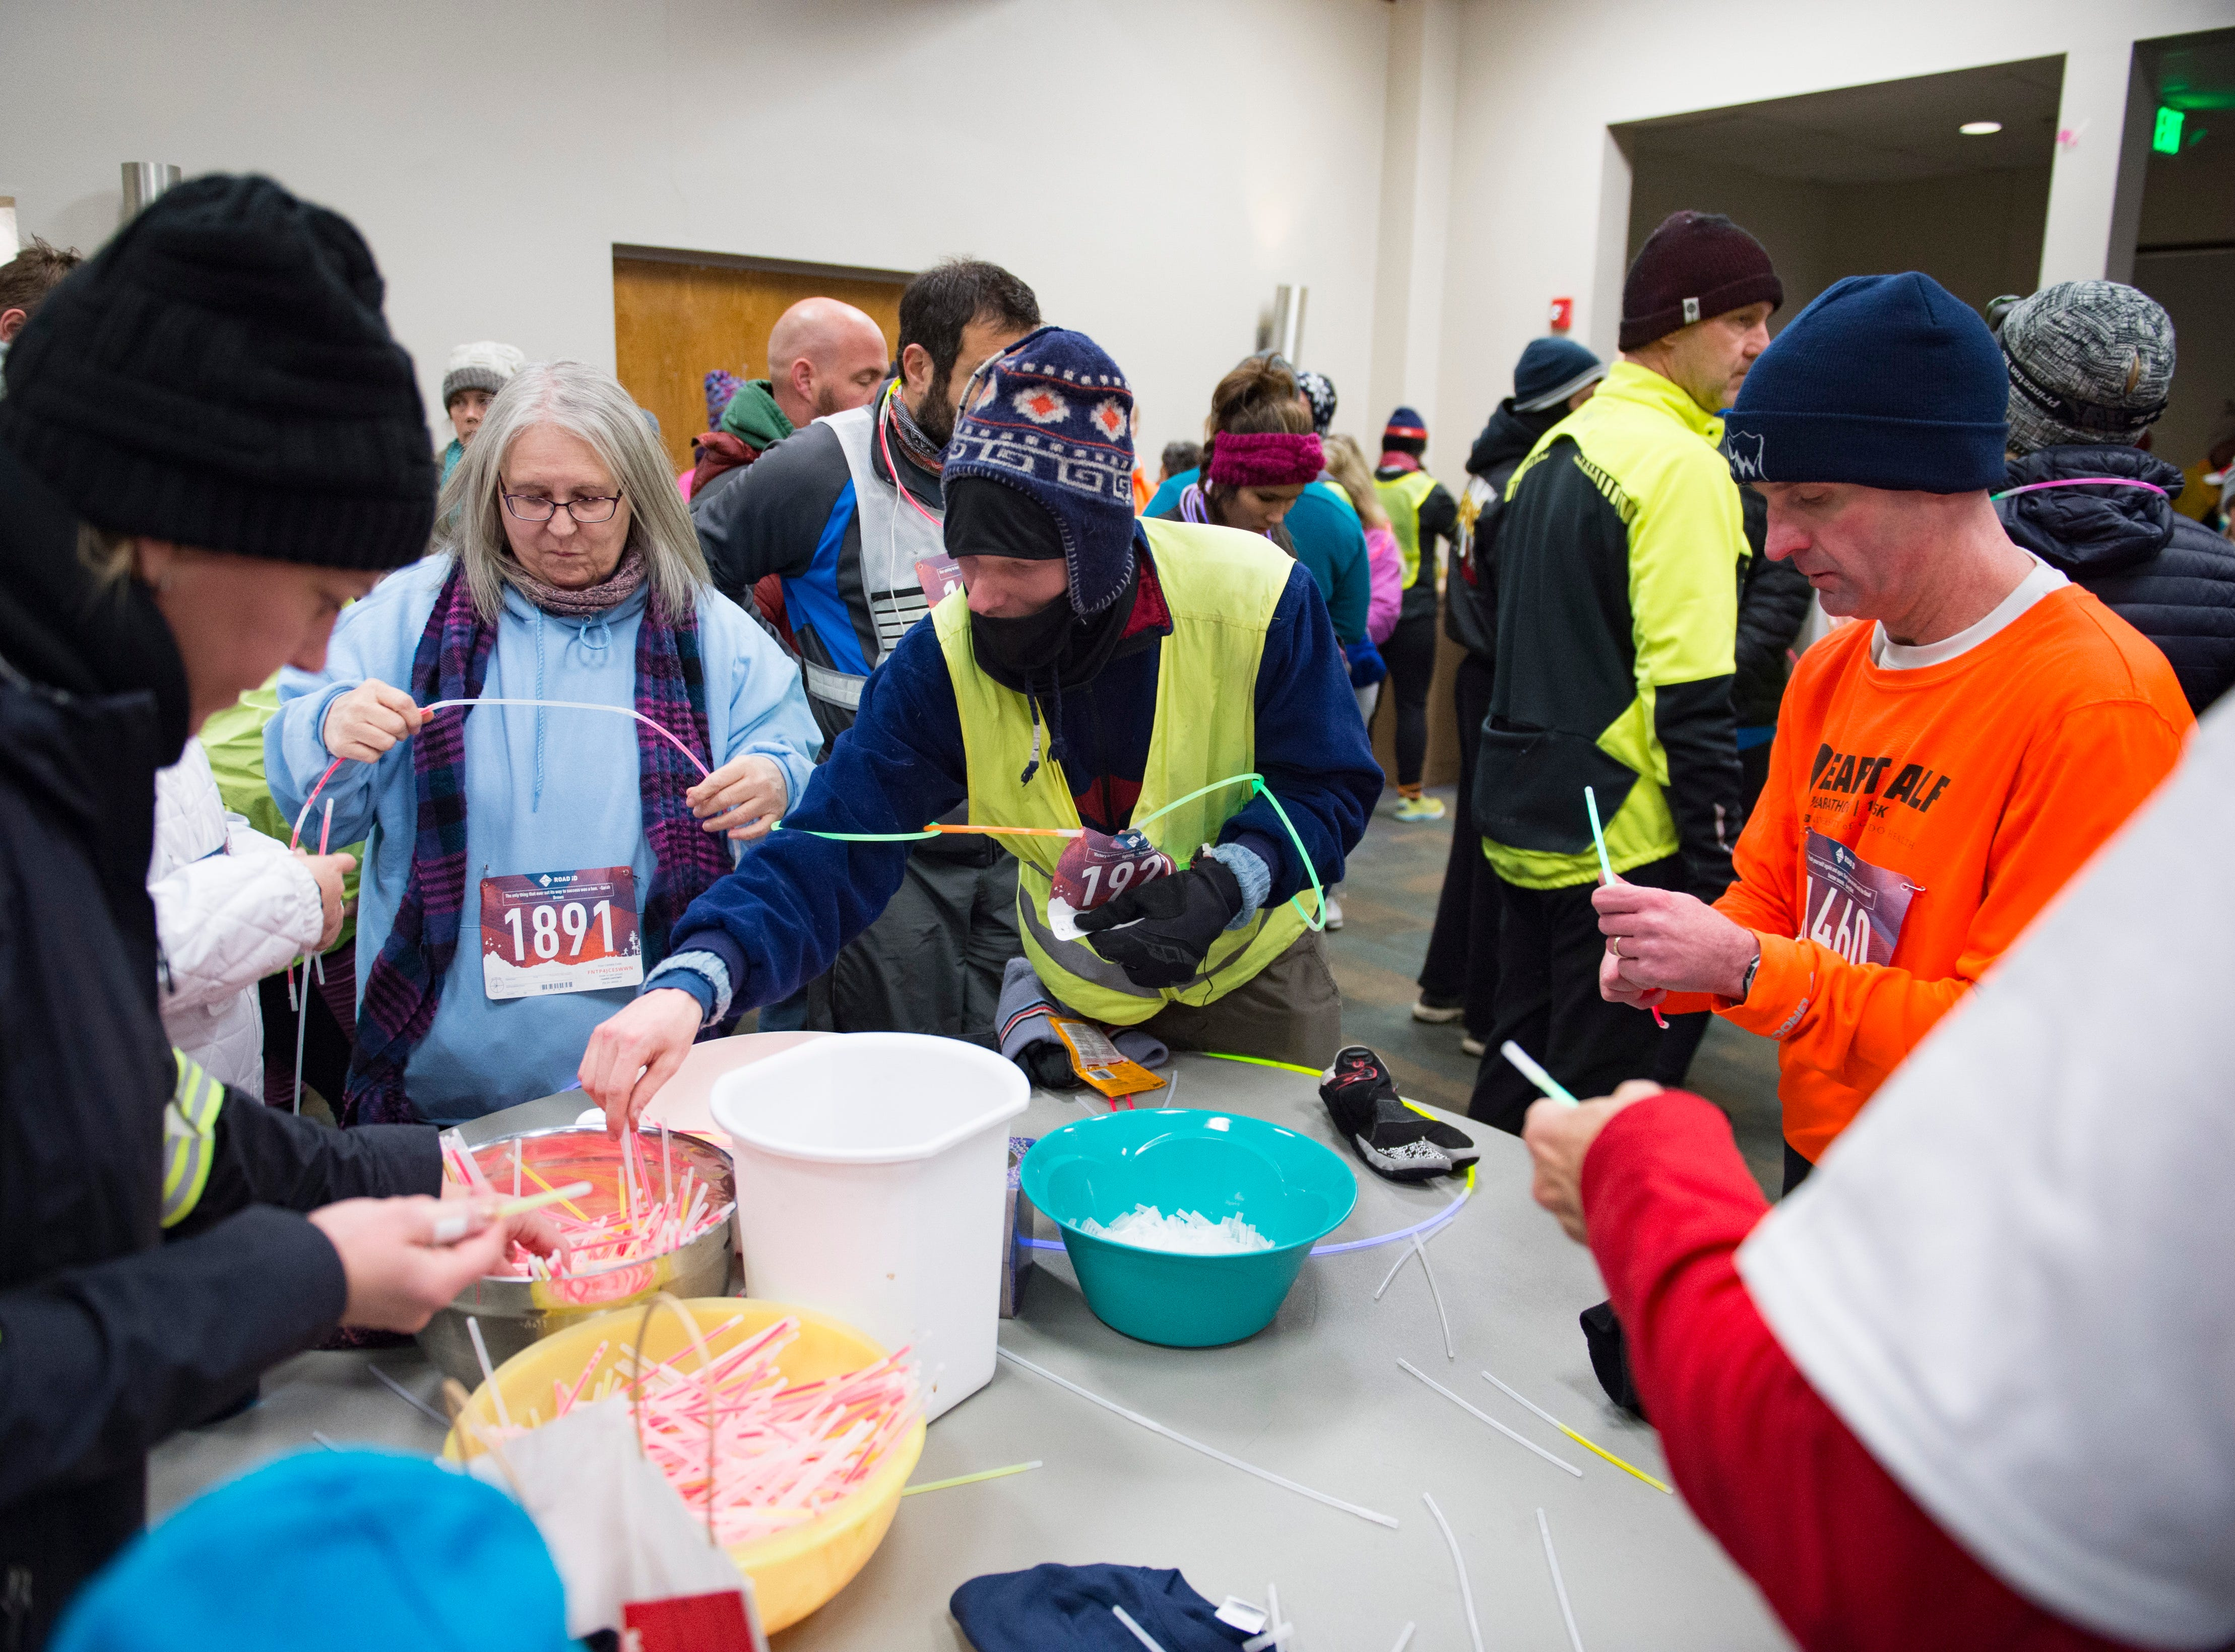 Runners grab glow-sticks before the Resolution Run 5K at Our Saviour's Lutheran Church on December 31, 2018. People braved single-digit temperatures to ring in the new year with the run.